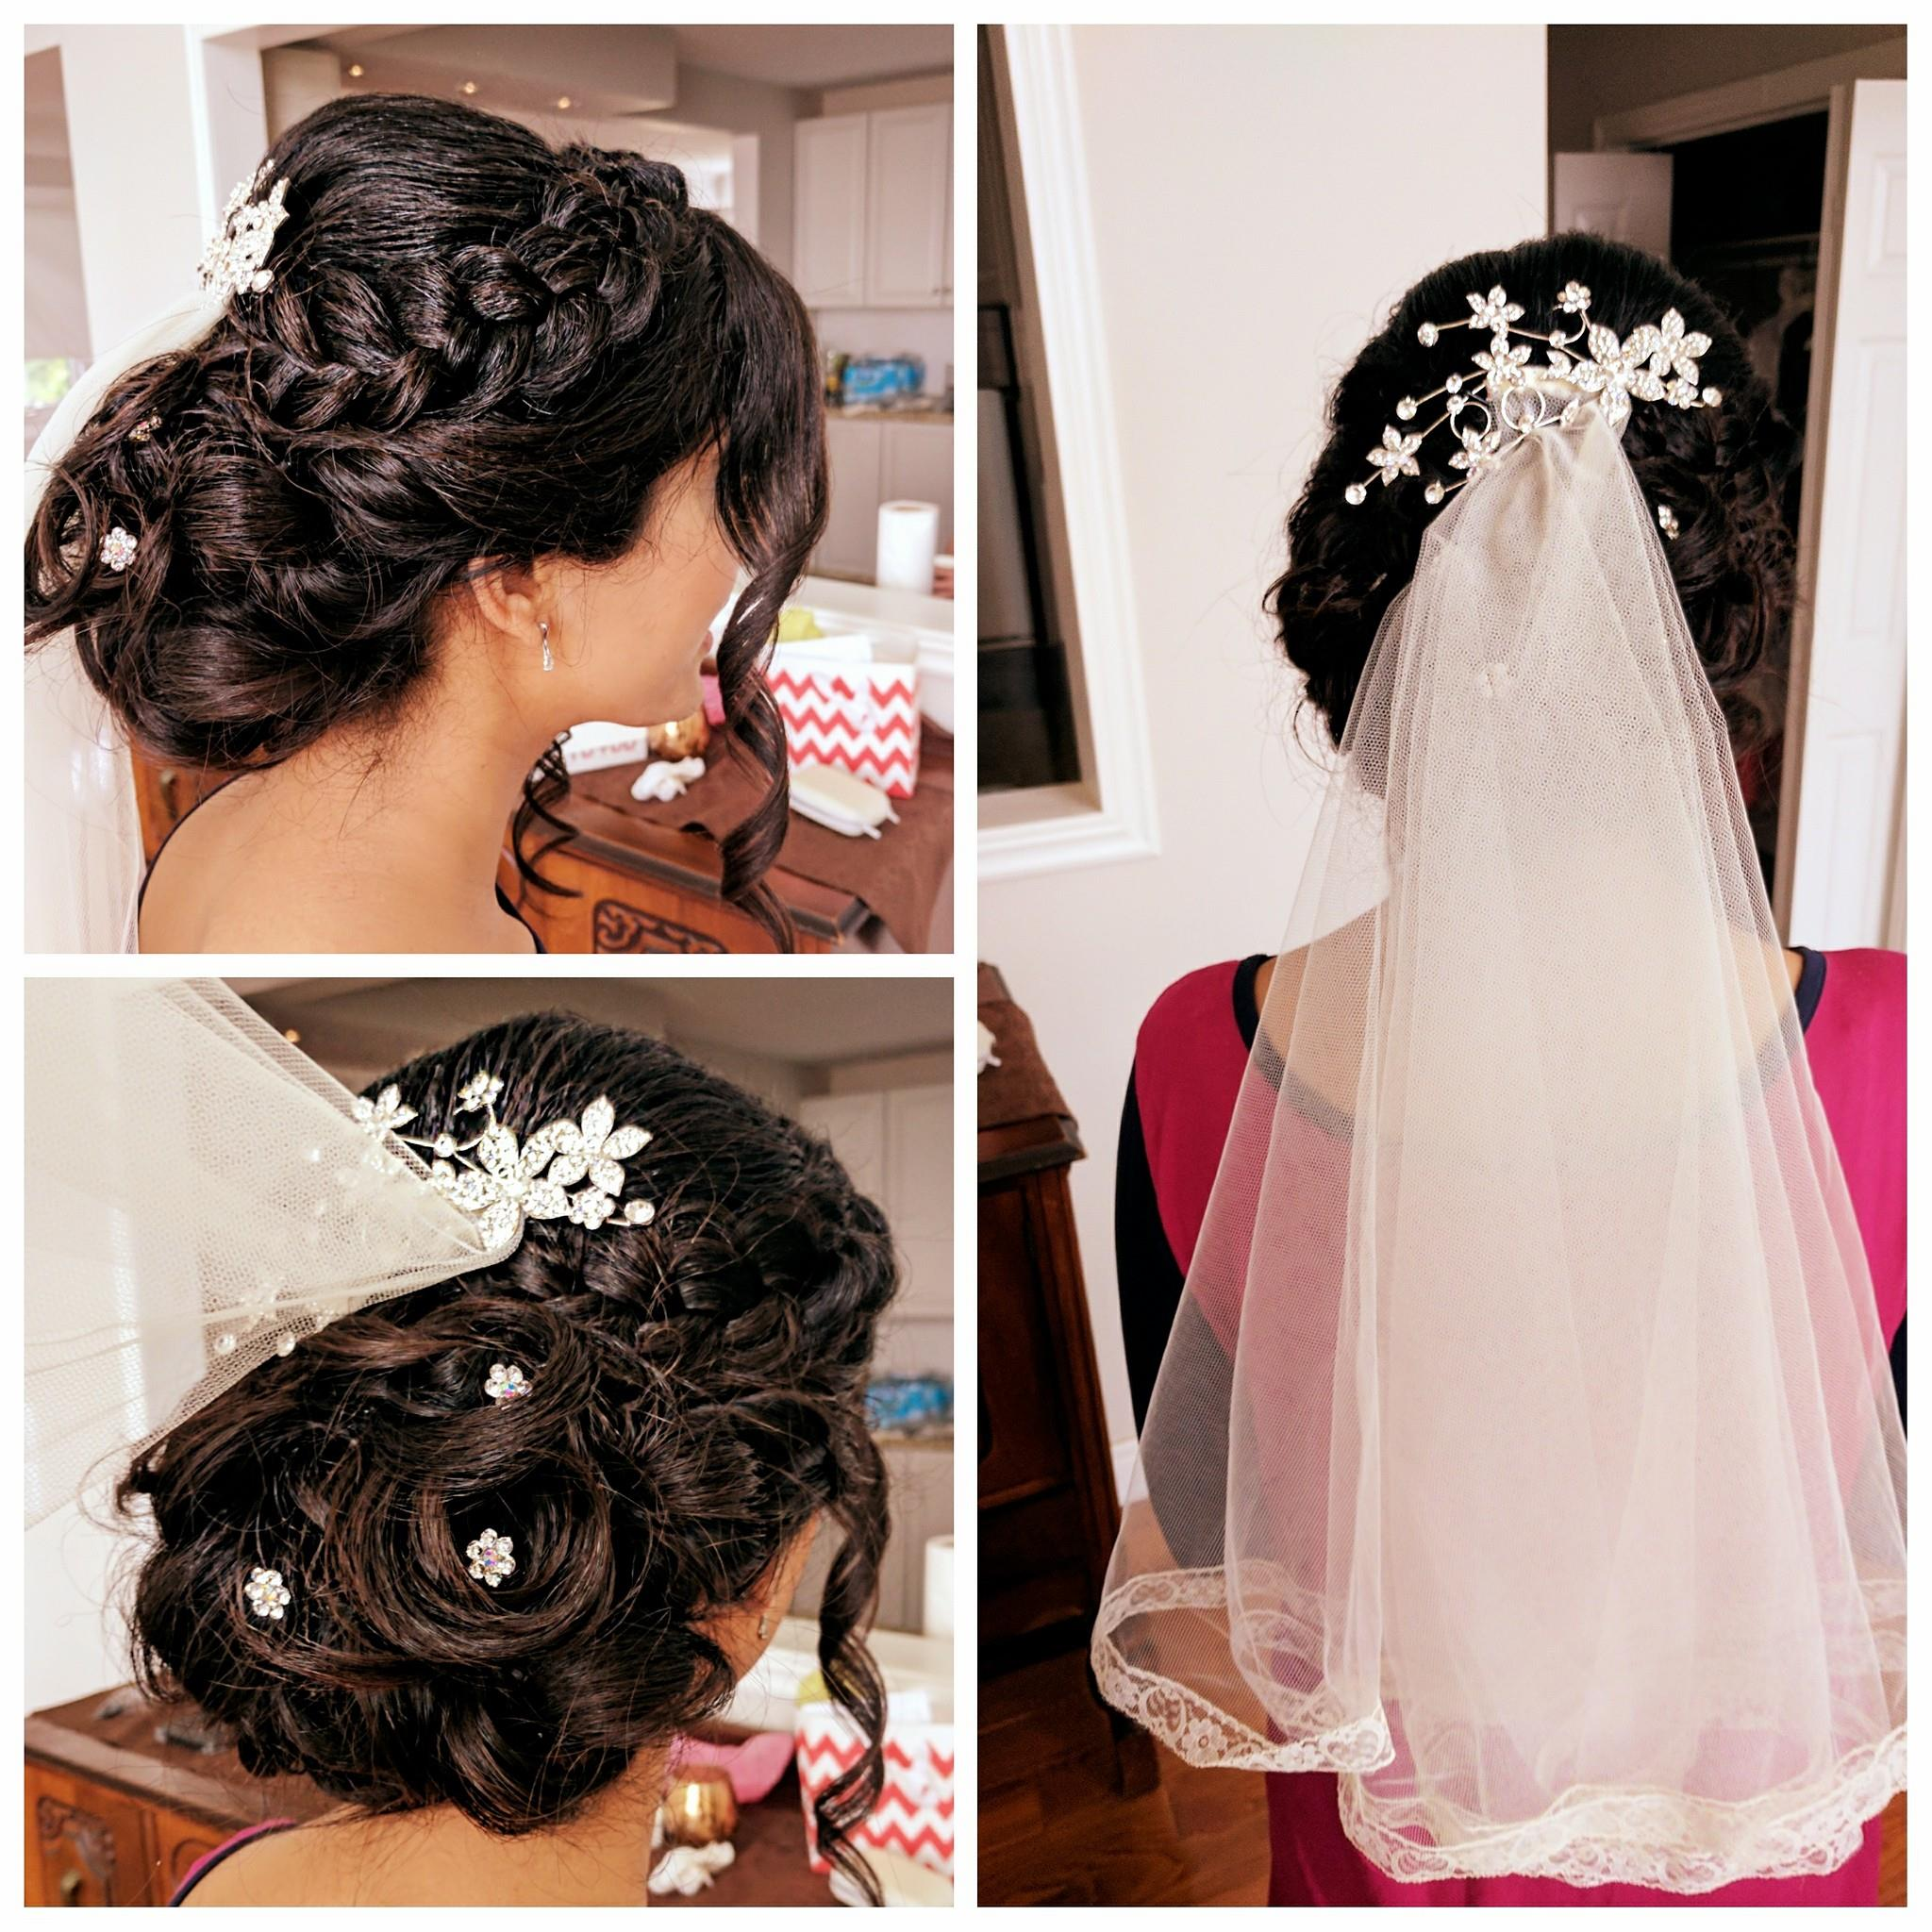 bridal makeup and hair promakeupbyhnatasha.jpg